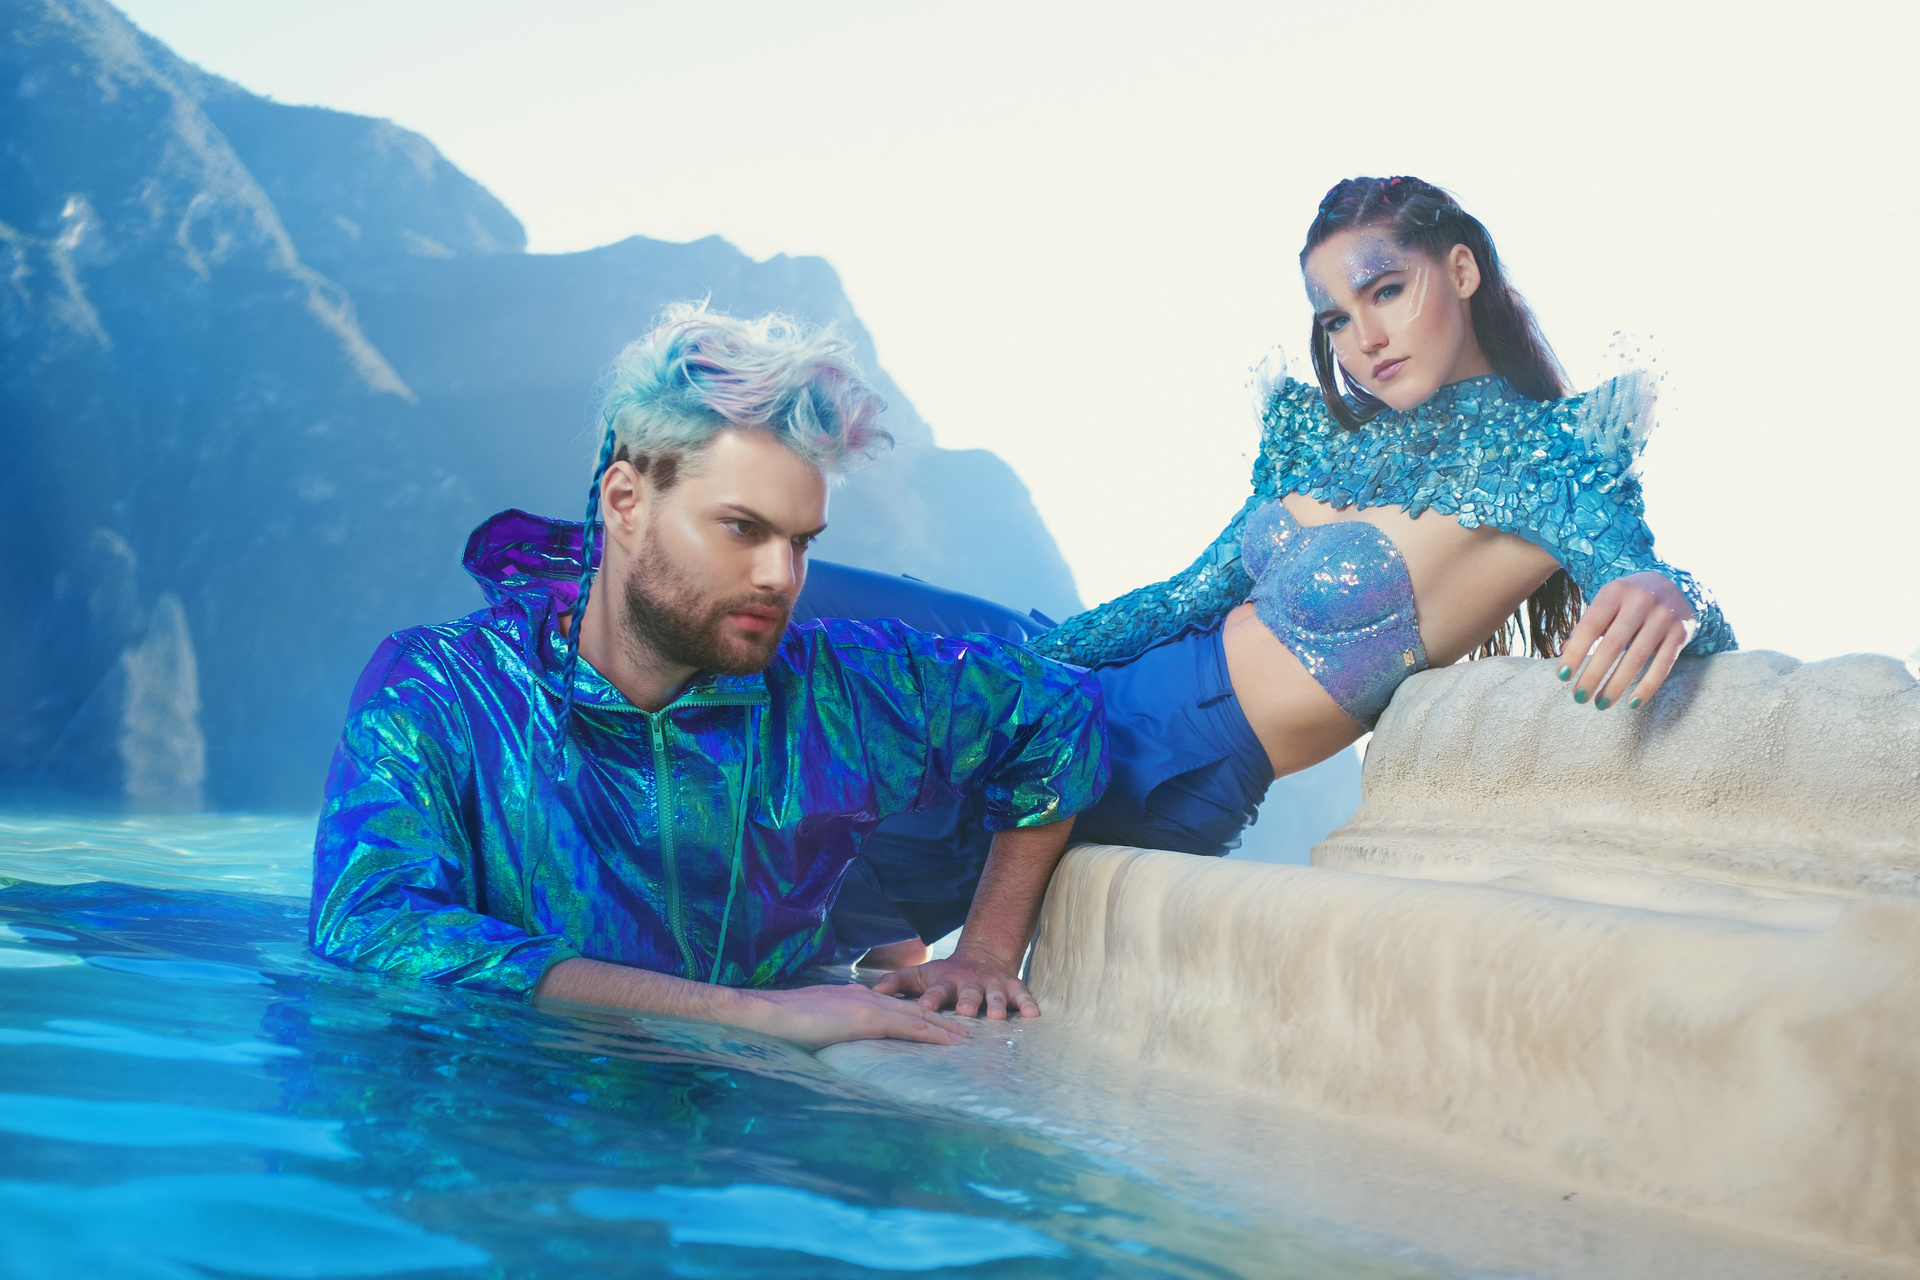 How a Foot Injury Led to Sofi Tukker's Latest EP